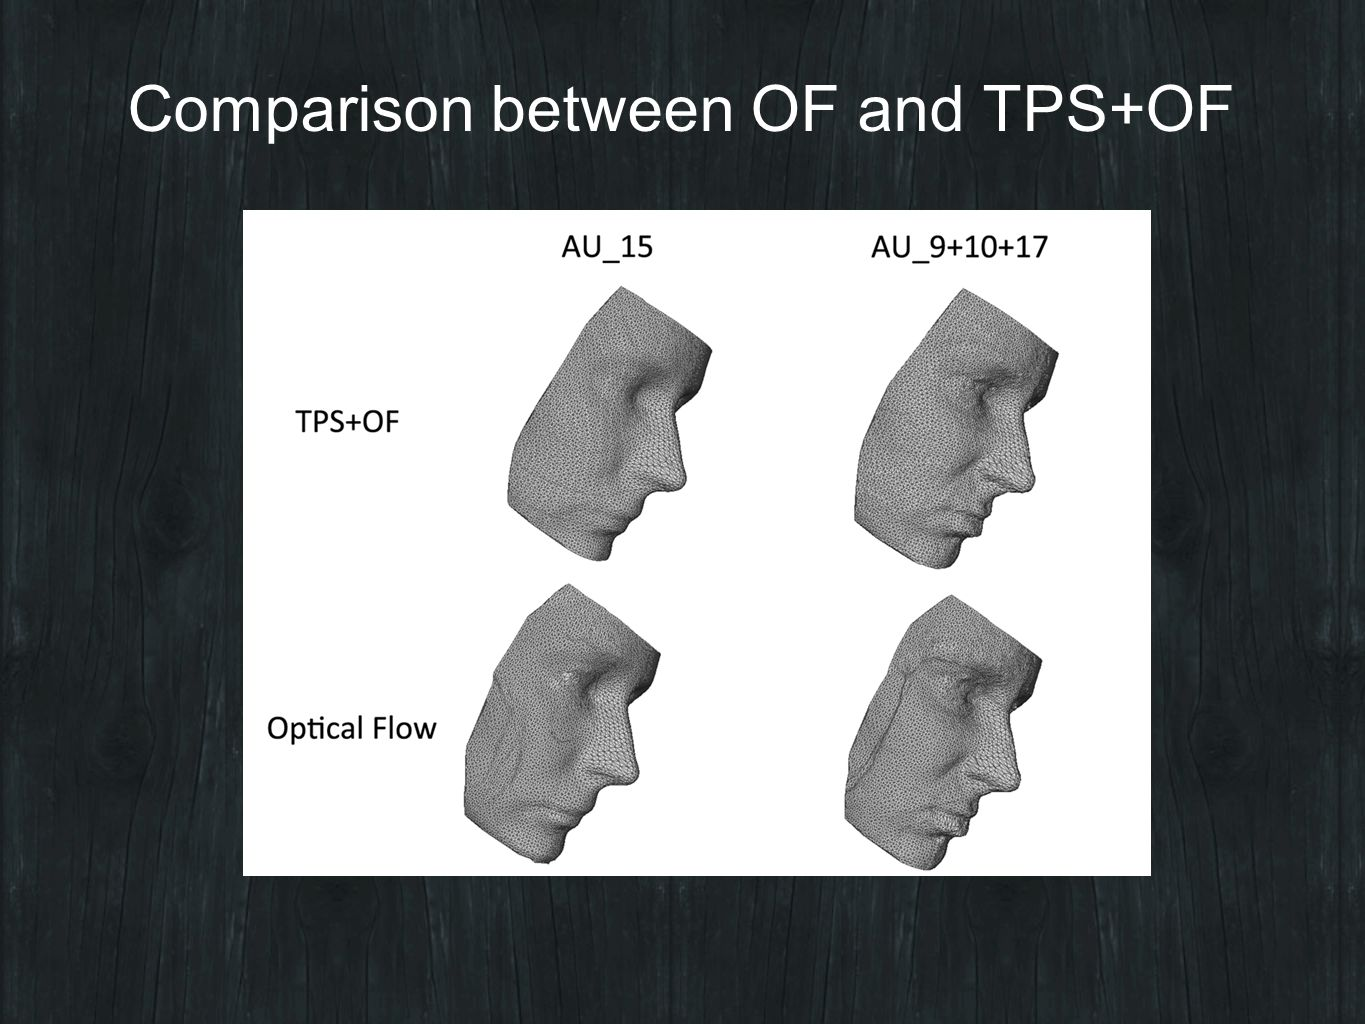 Comparison between OF and TPS+OF